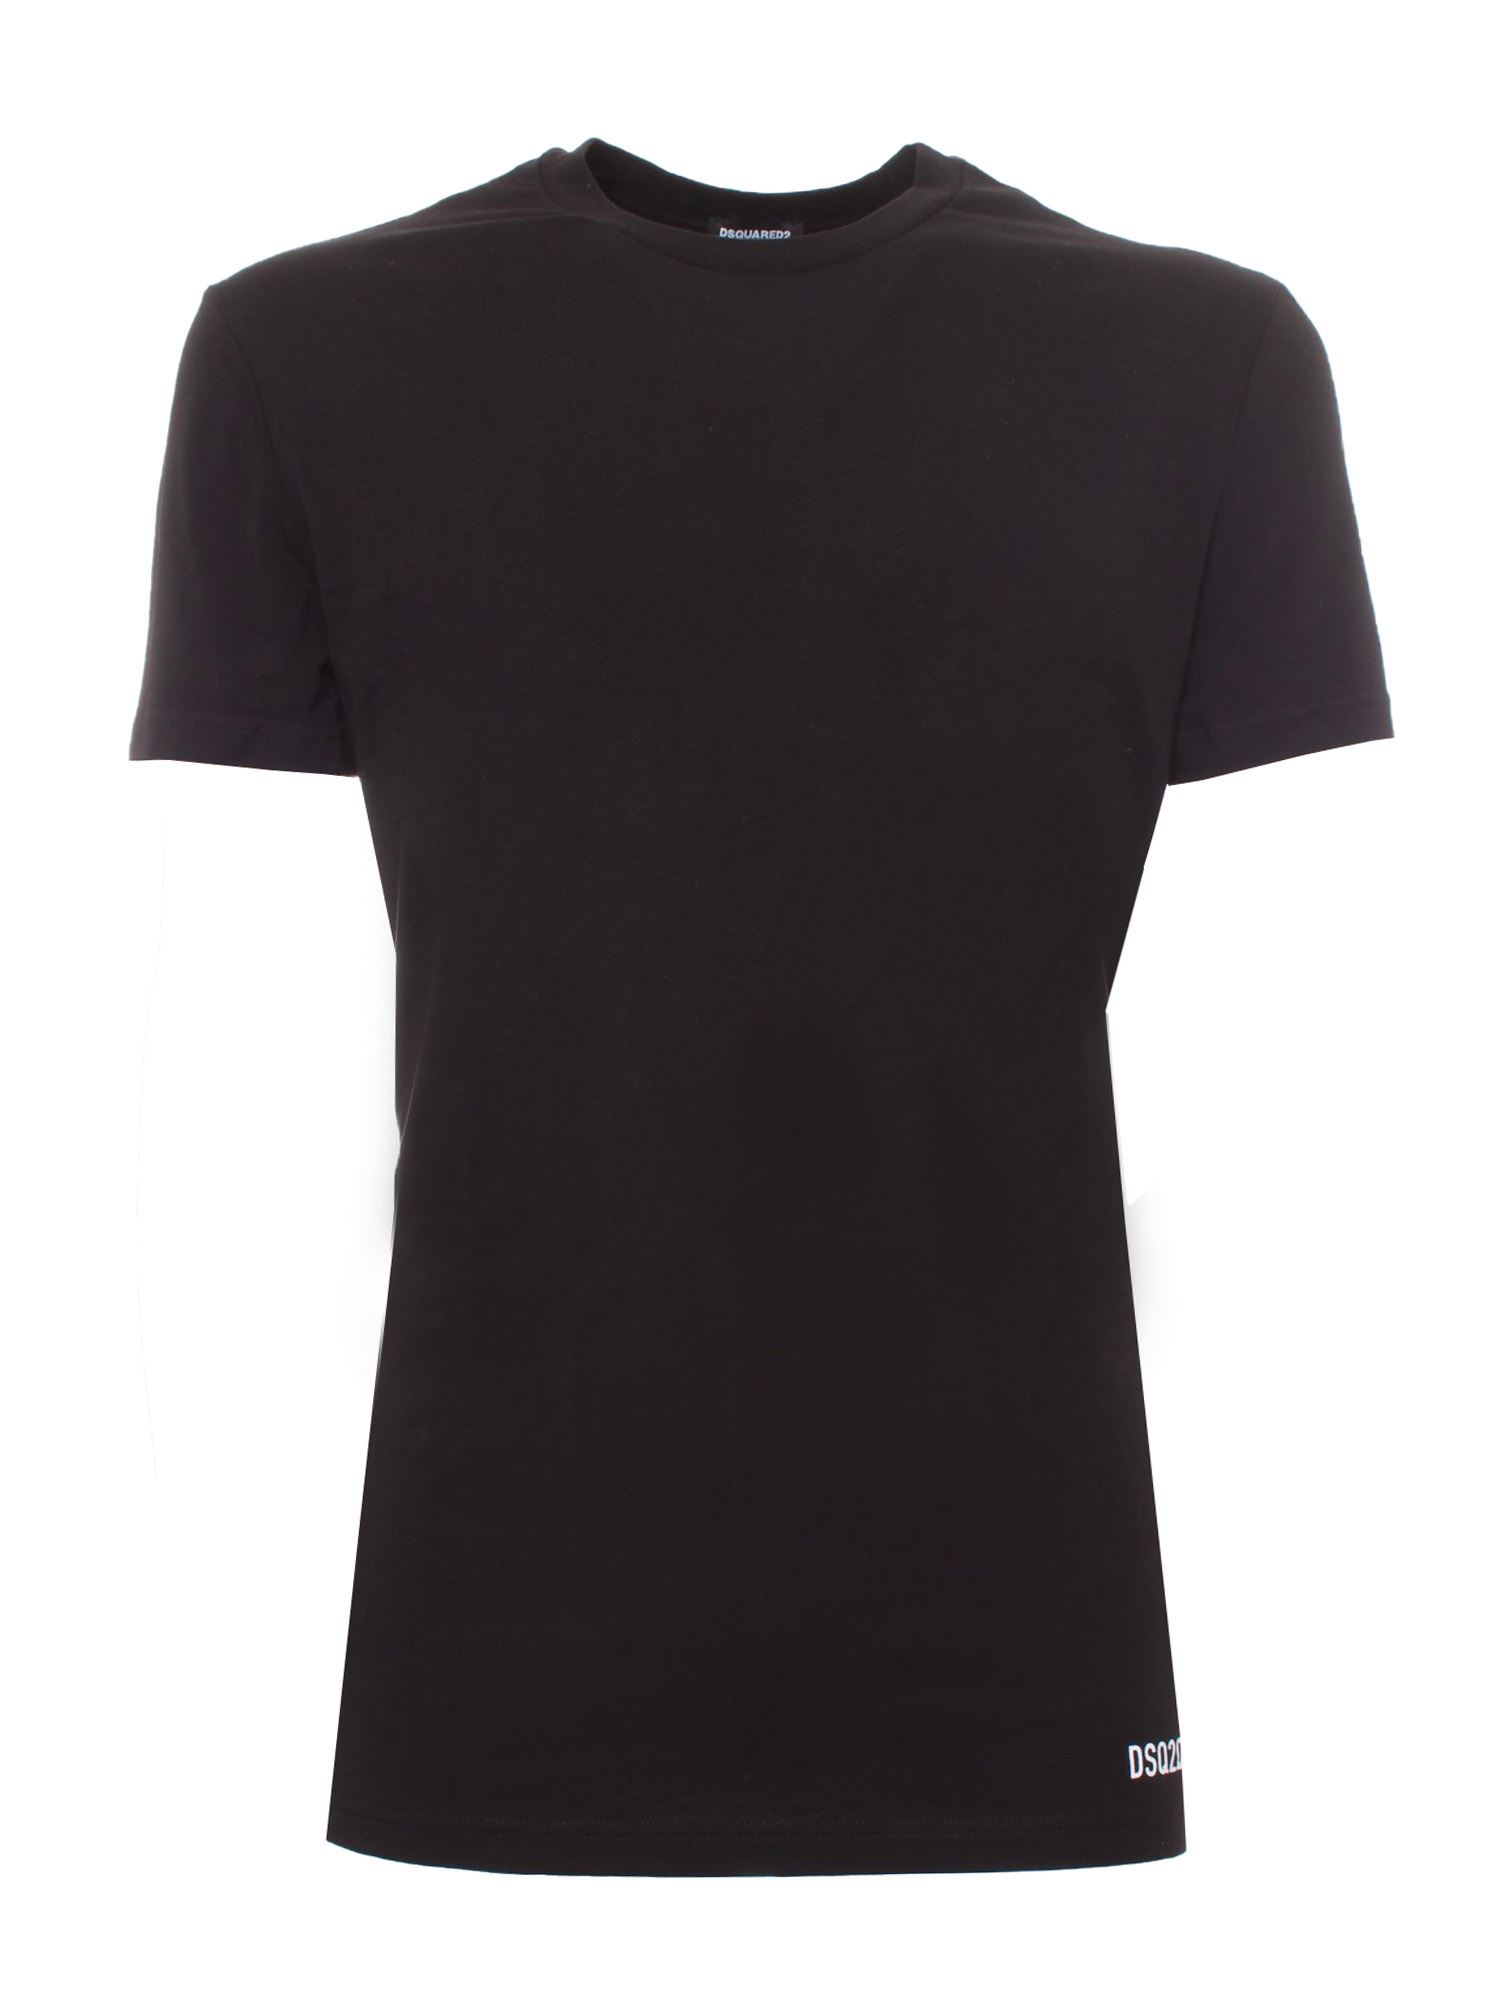 Dsquared2 Cottons DSQ2QSD T-SHIRT IN BLACK